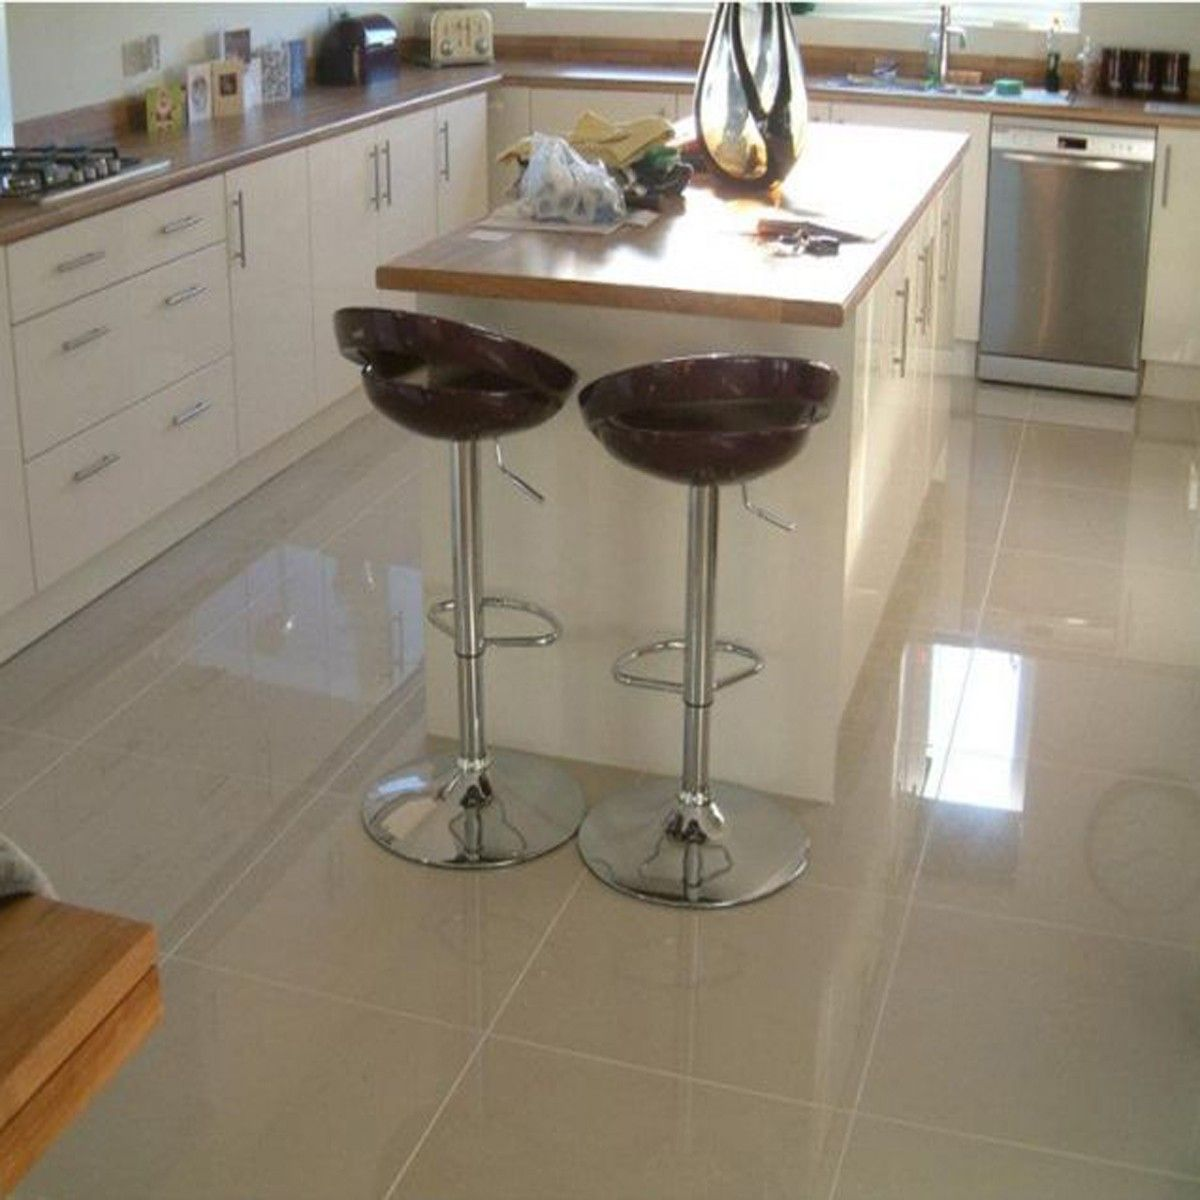 Large Floor Tiles For Kitchen Floor Only Flooring Ideas Pinterest Dark Cream And Search